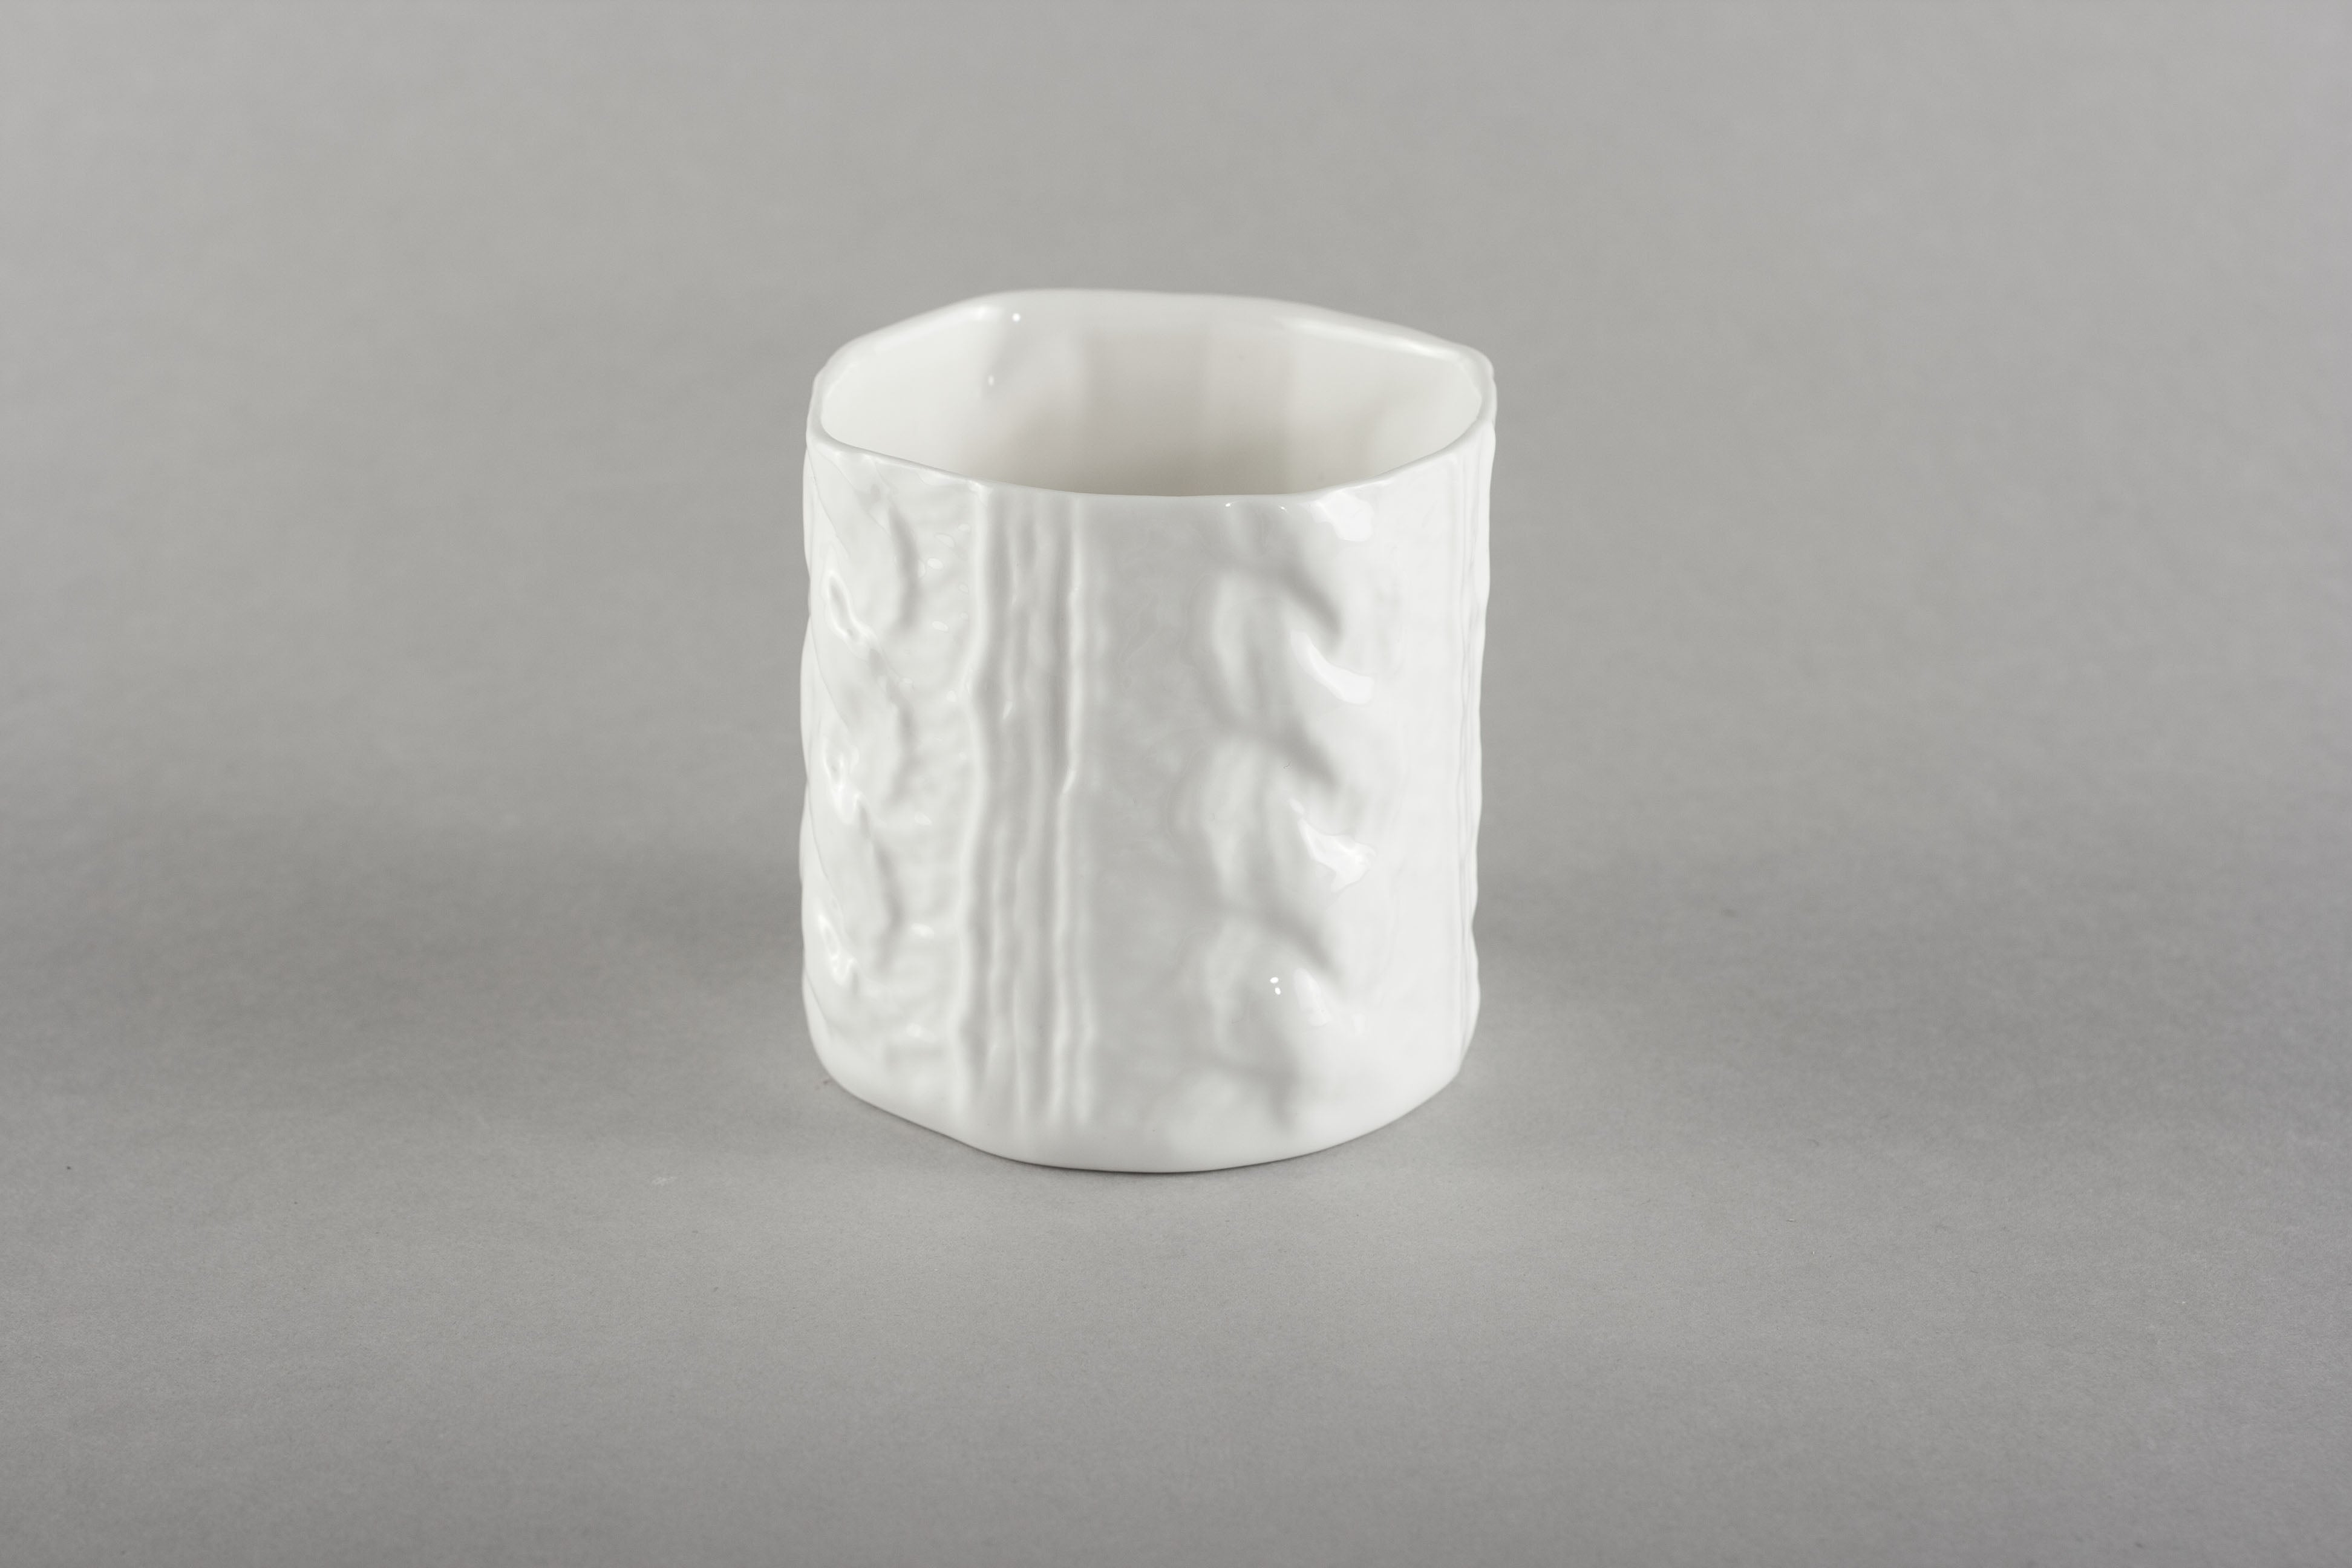 Porcelain Knitted Cup